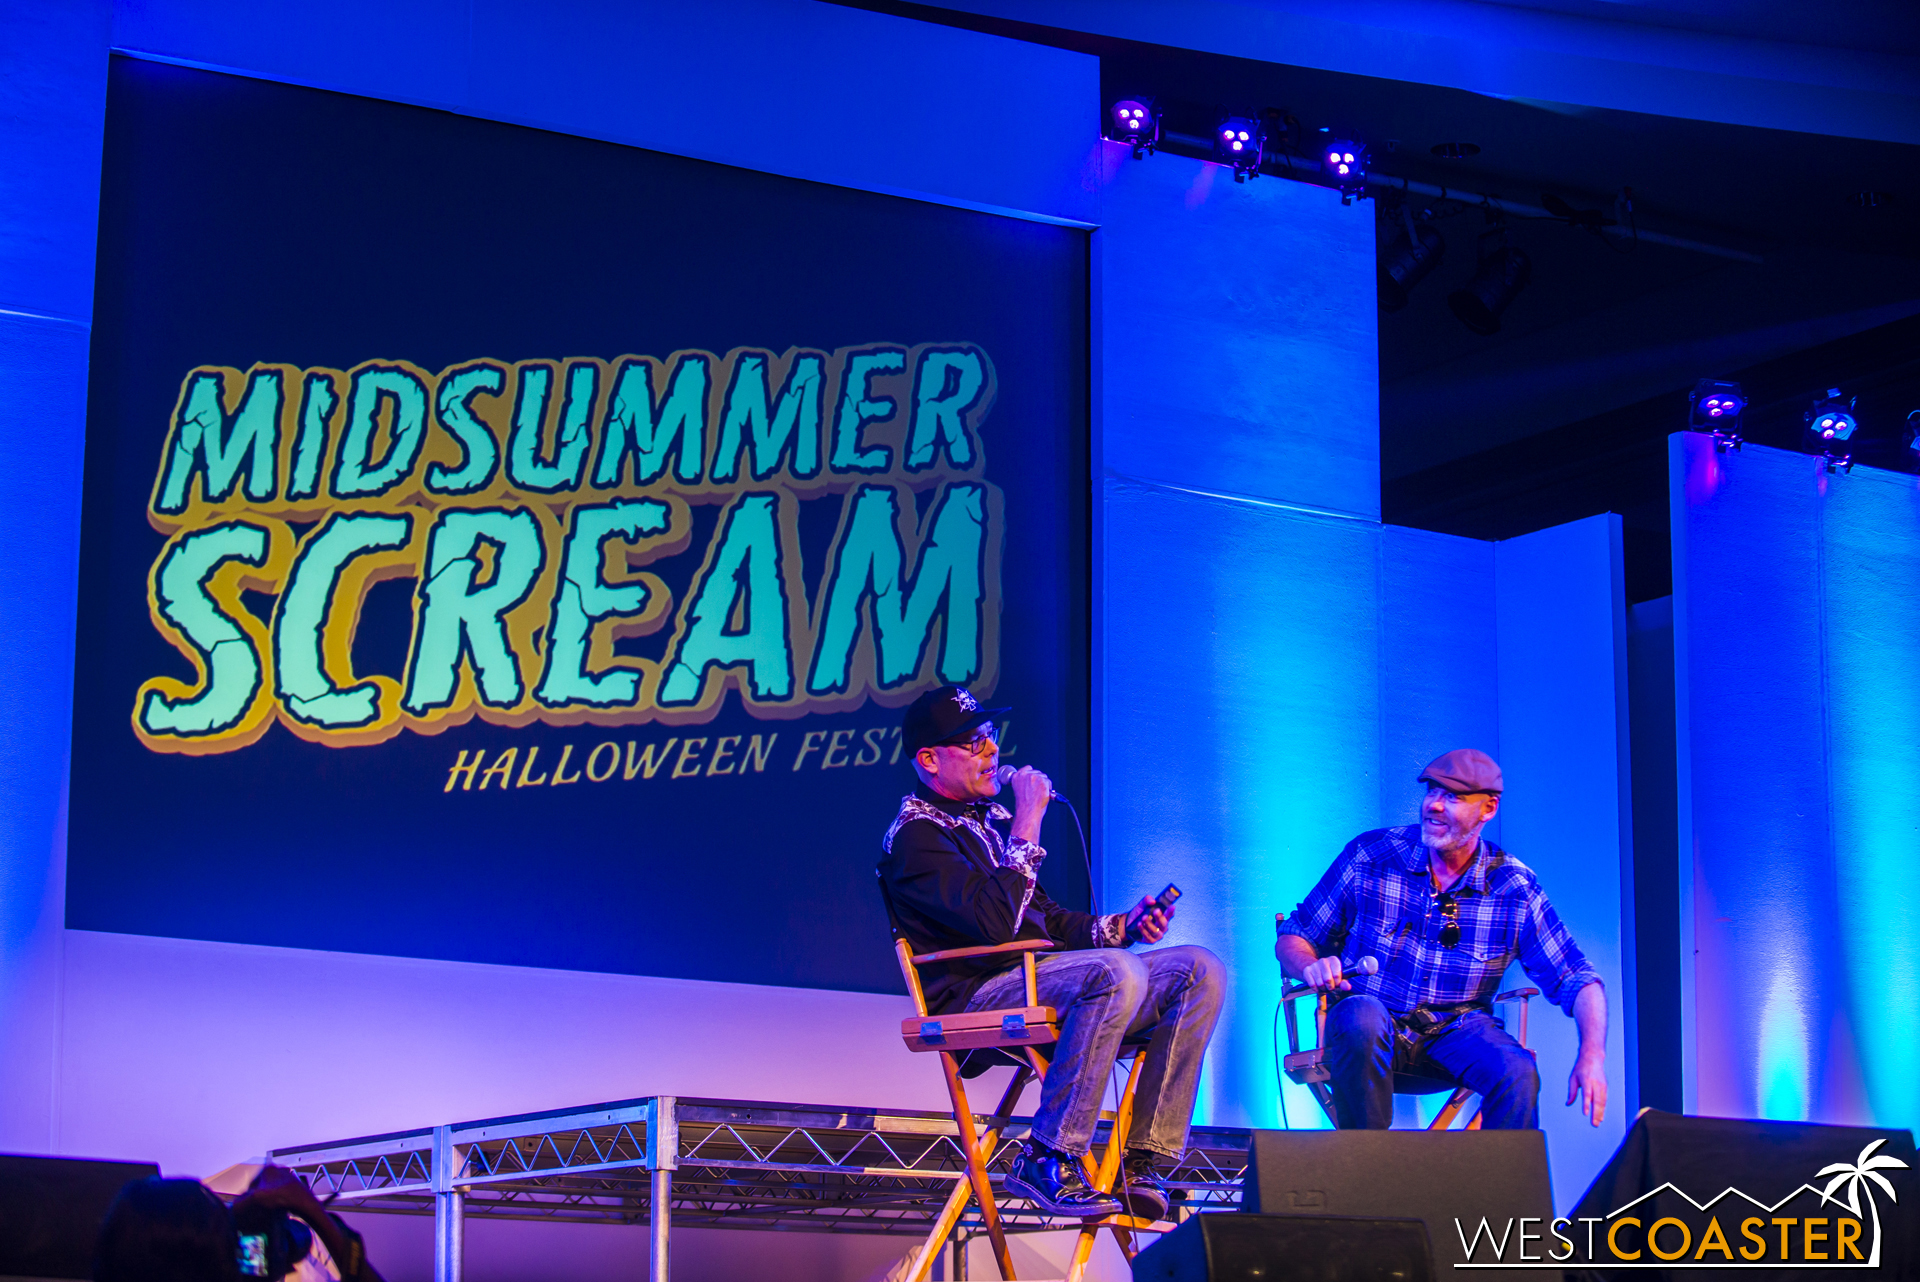 They then went over the three mazes themed to Freddy, Jason, Michael Myers, and Leatherface for 2016. There was a familiar formula: review past HHN mazes themed to these icons and talk about the evolution of props and effects and scare tactics used in these mazes that paved the way for similar effects to be used prevalently elsewhere.